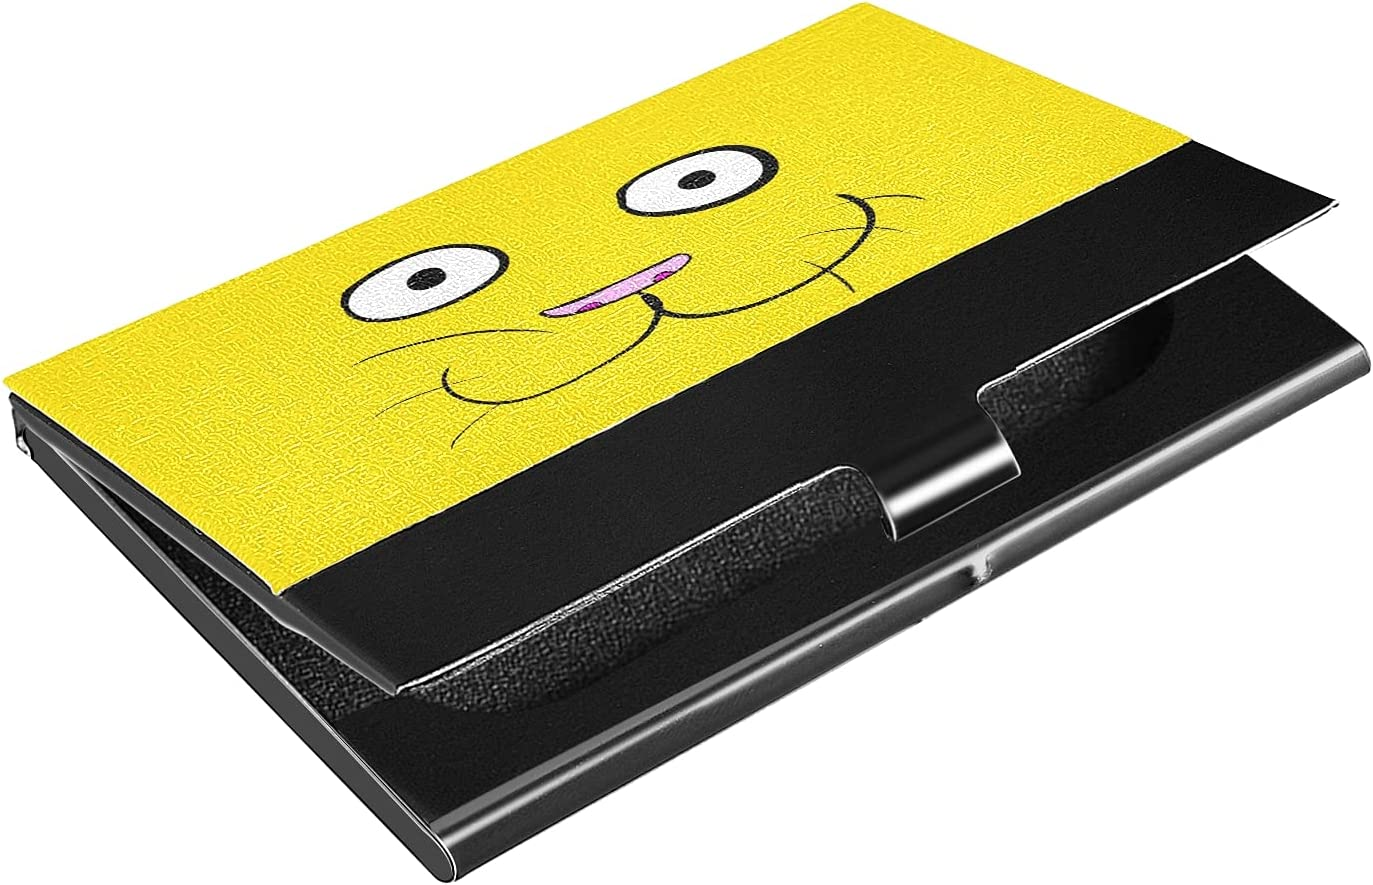 OTVEE Yellow Cat Business Card Holder Wallet Stainless Steel & Leather Pocket Business Card Case Organizer Slim Name Card ID Card Holders Credit Card Wallet Carrier Purse for Women Men